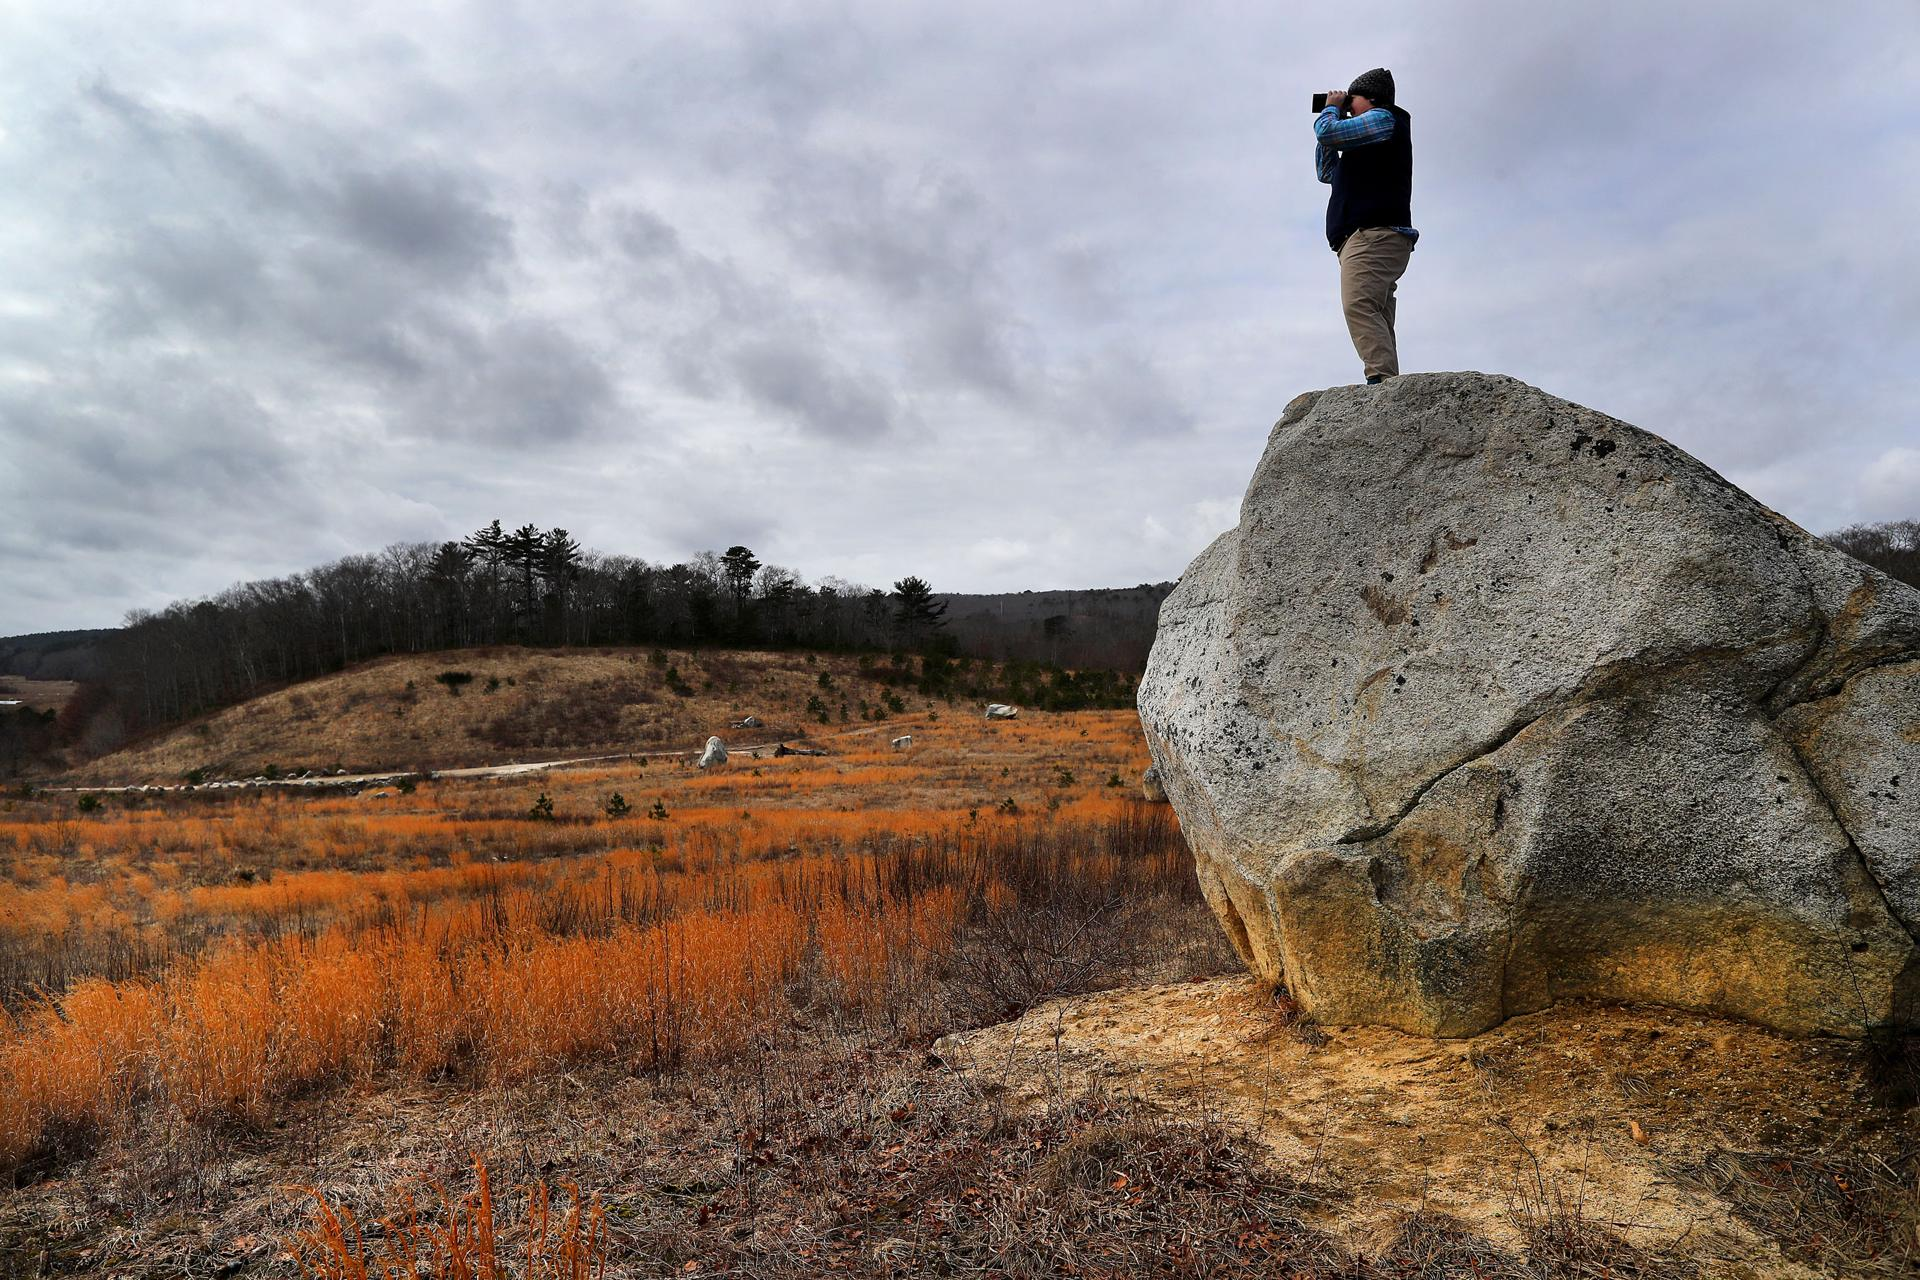 PLymouth-02/14/18 Lauren Kras, a wildlife bioligist stands on a huge rock looming over the sand plain below, which once was a big gravel pit used at the former cranberry bogs at the newly opened 450-plus acre Mass Audubon's Tidmarsh Wildlife Sanctuary. The former working cranberry farm underwent the largest freshwater ecological restoration ever completed in the Northeast. Slowly, new wildlife is attracted to the three and a half miles of landscape that was created by removing nine dams to reconnet the headwaters of the Beaver Dam Brook to the ocean. John Tlumacki/Globe Staff(metro)